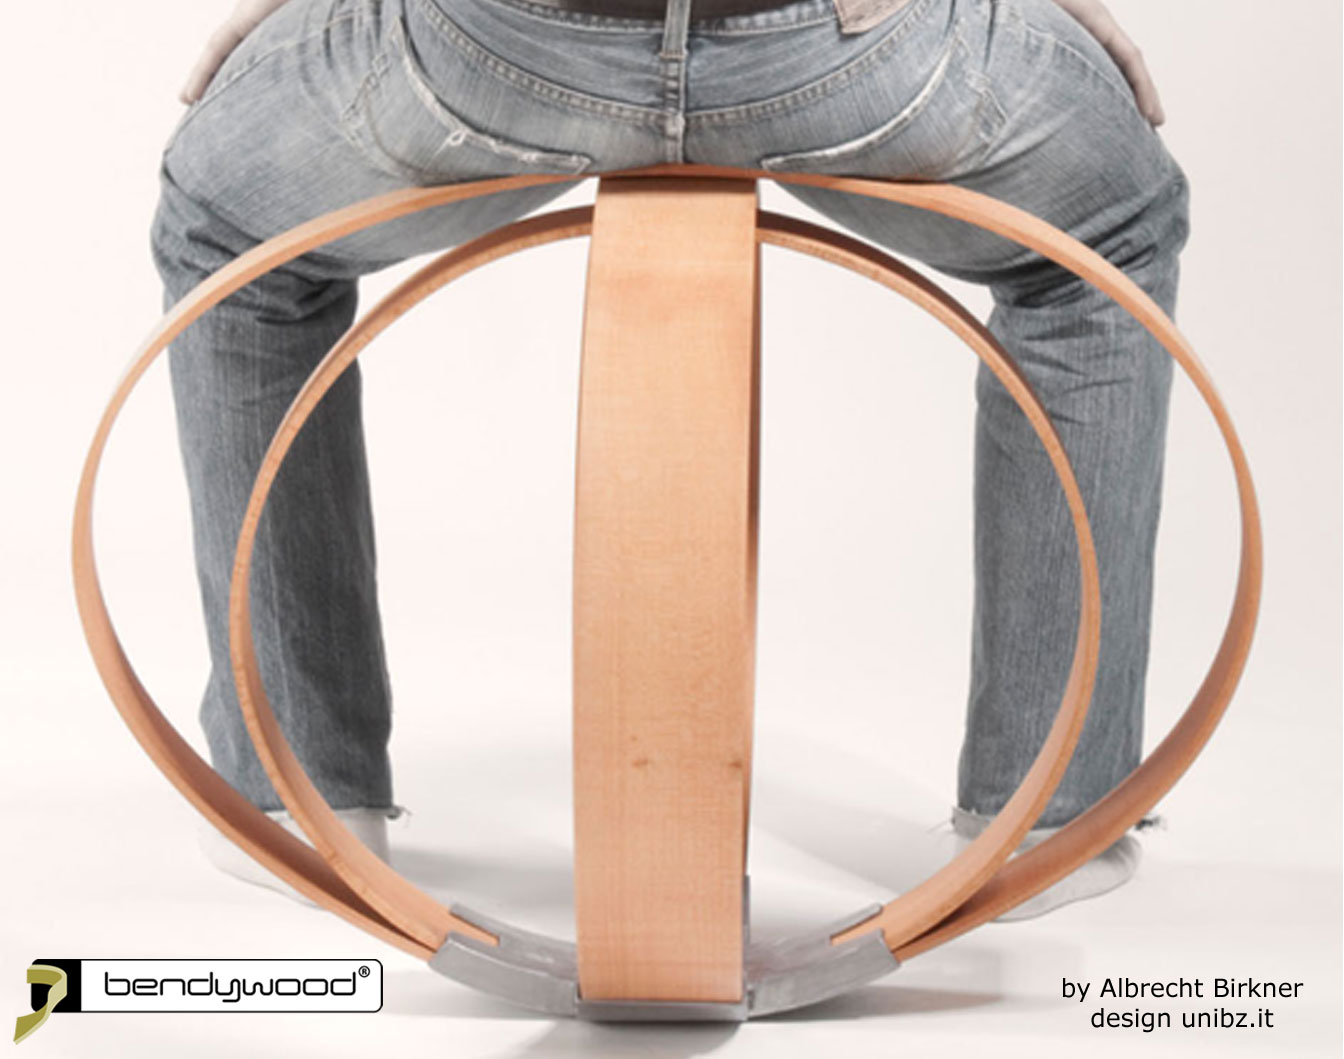 Bending wood Bendywood® - stability ball